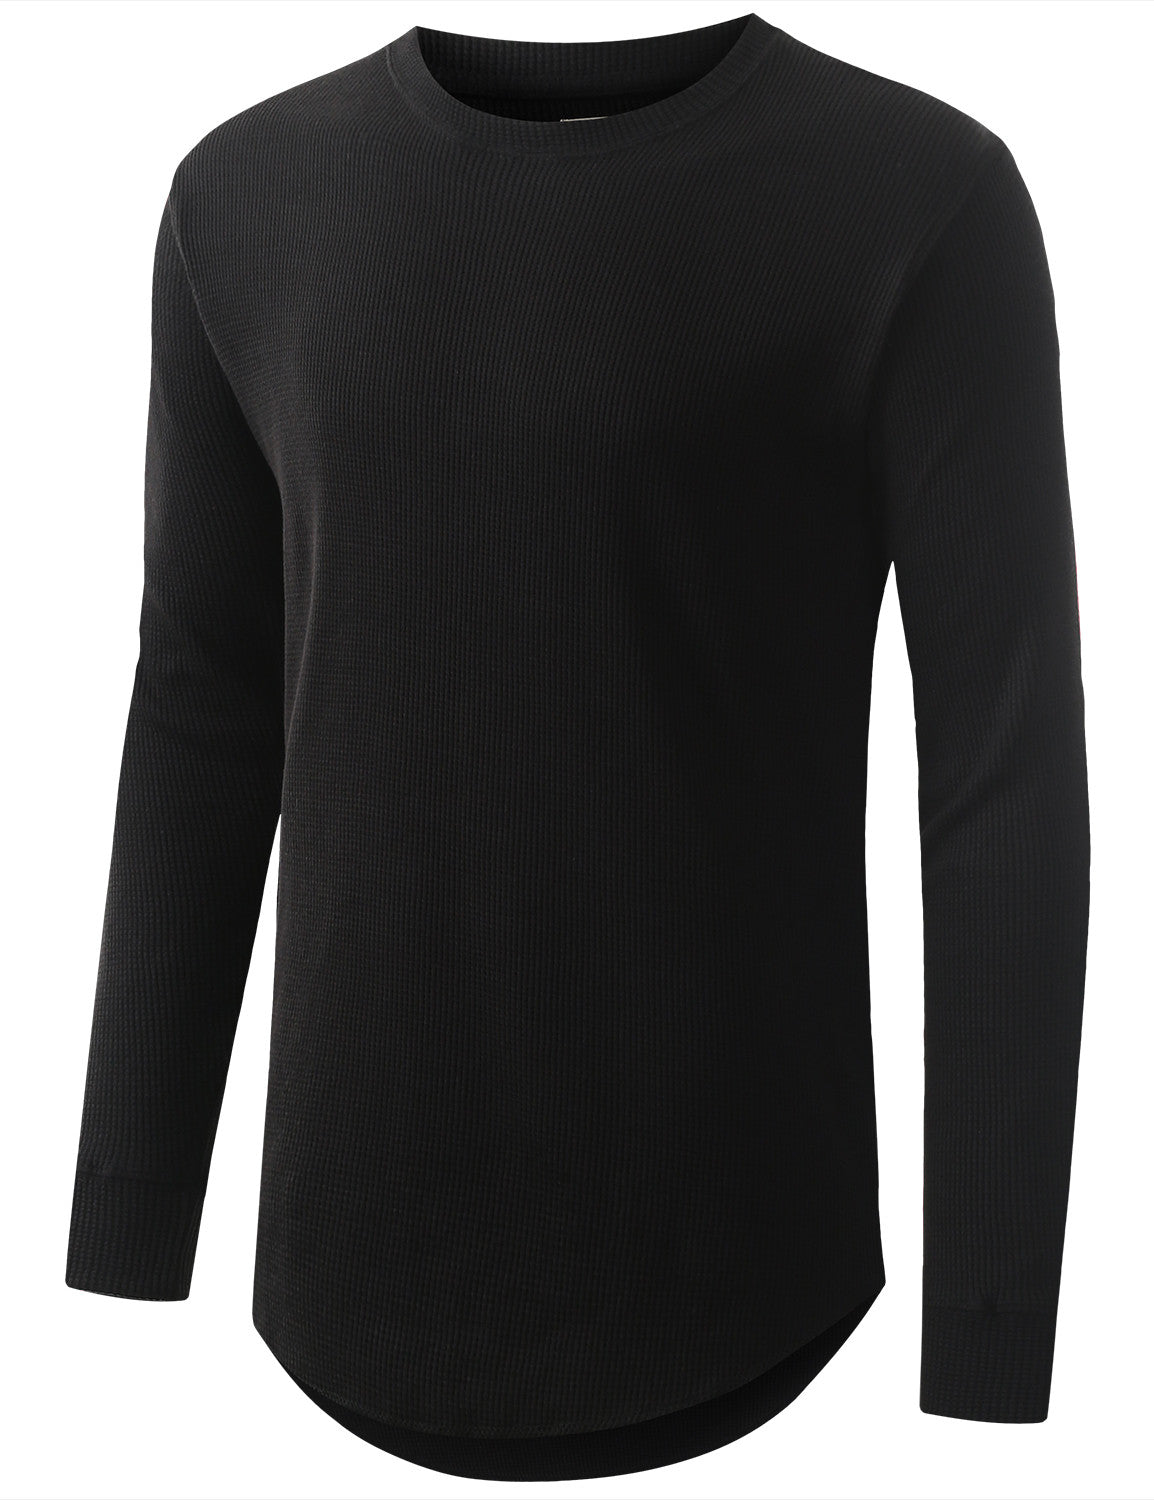 BLACK Raw Edge Thermal Long Sleeve Tshirt - URBANCREWS